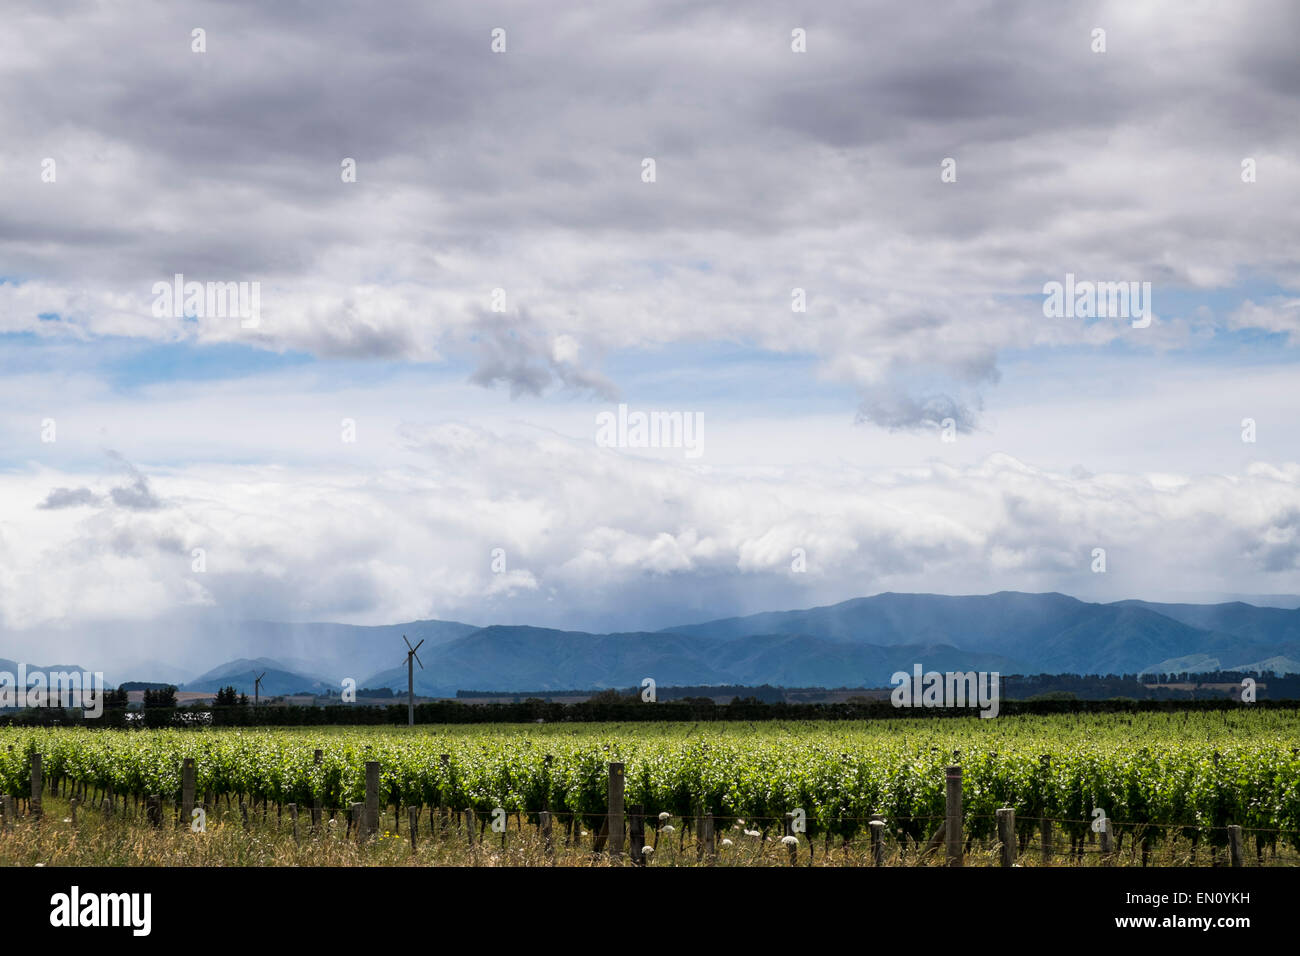 Rainclouds coming in over the Martinborough region of New Zealand. - Stock Image